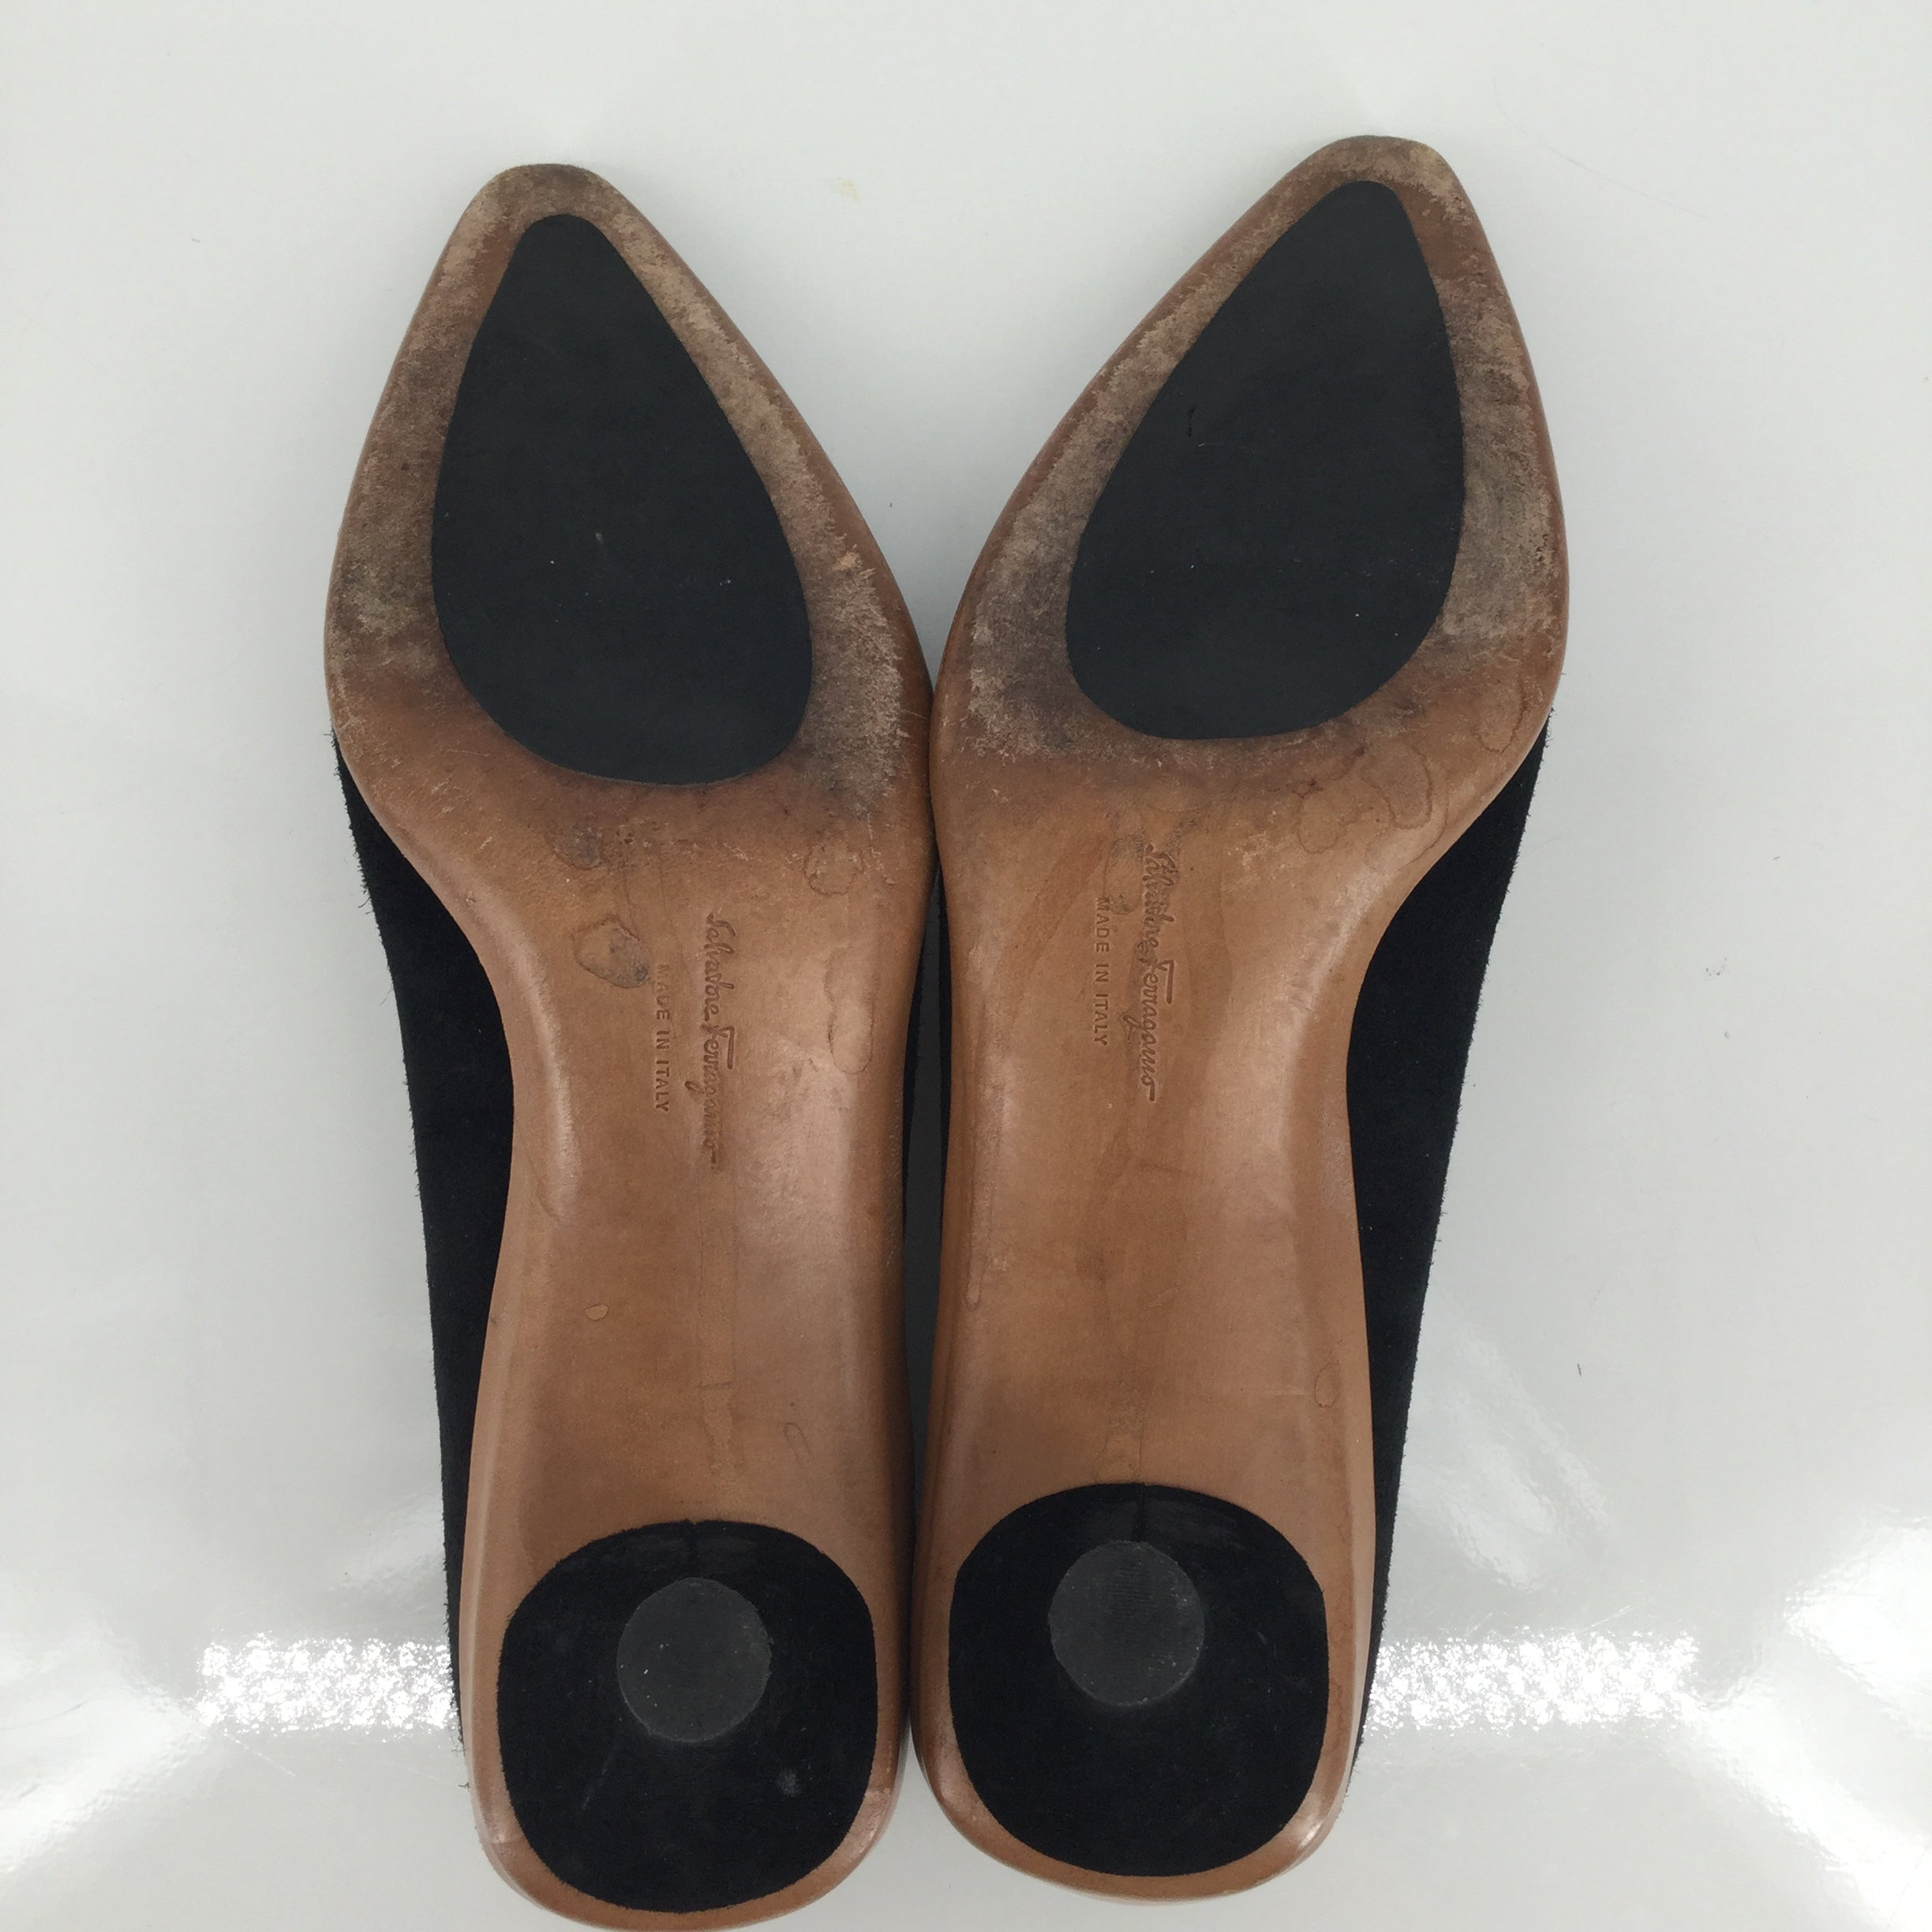 Salvatore Ferragamo Low Heels  - LOW HEELS IN A BLACK SUEDE-LIKE MATERIAL WITH BROWN TRIM ALONG THE SIDES AND HEEL. FEATURES POINTED TOES AND A SILVER BUCKLE ACROSS THE FRONT.